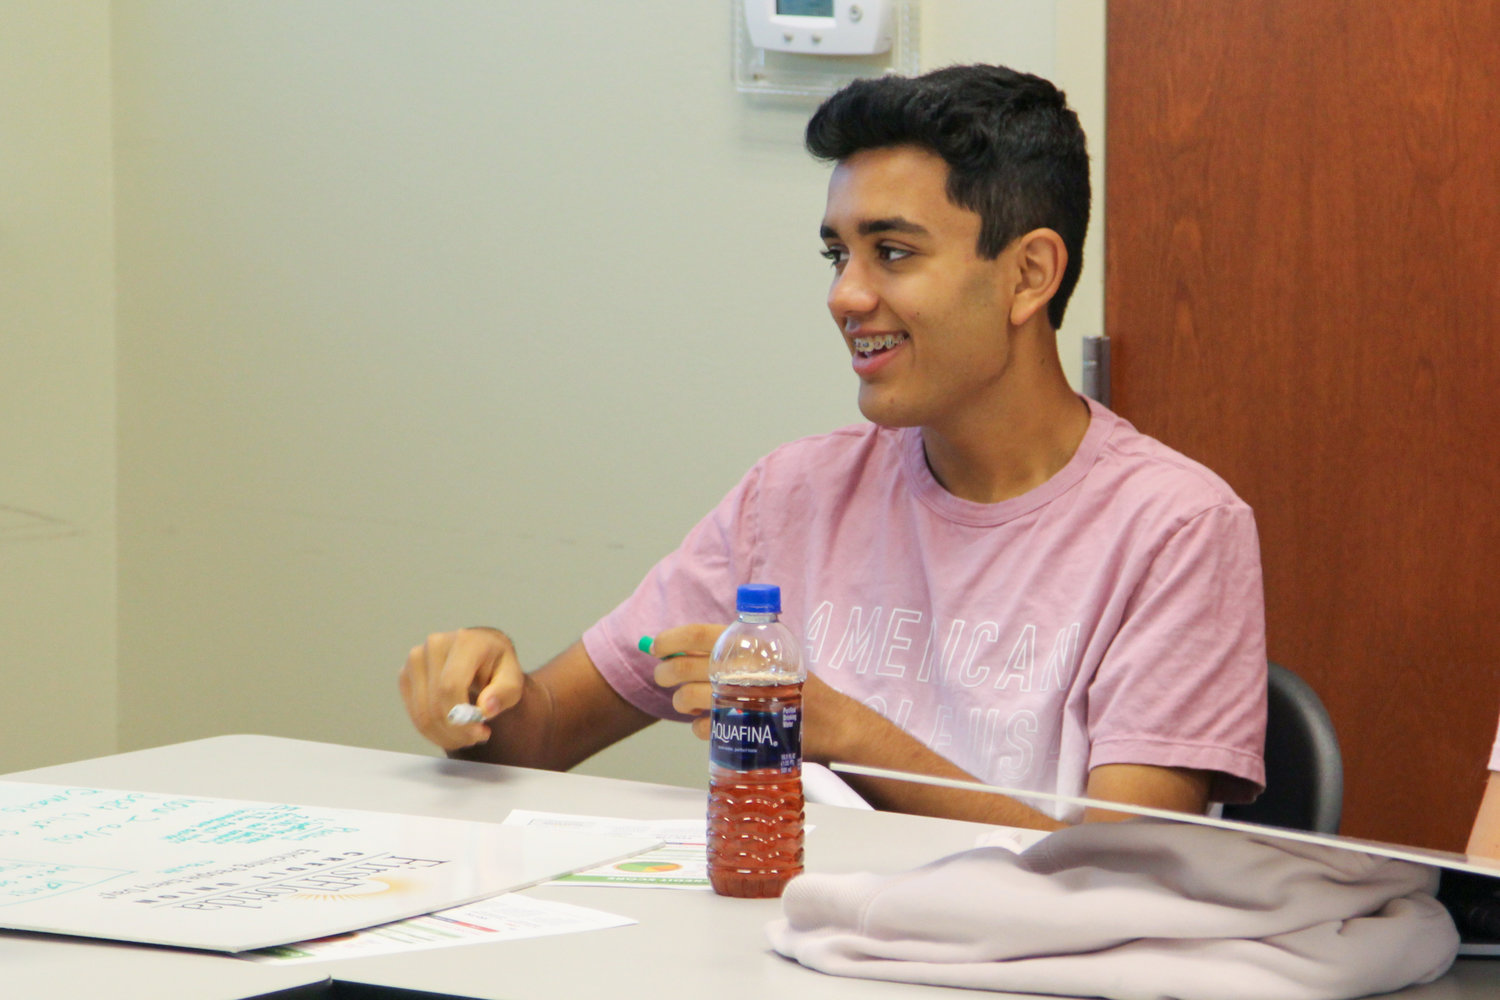 Nease High School junior Shivam Shah attended last week's Camp C.E.O., a free financial literacy camp hosted by First Florida Credit Union at its County Road 210 branch.